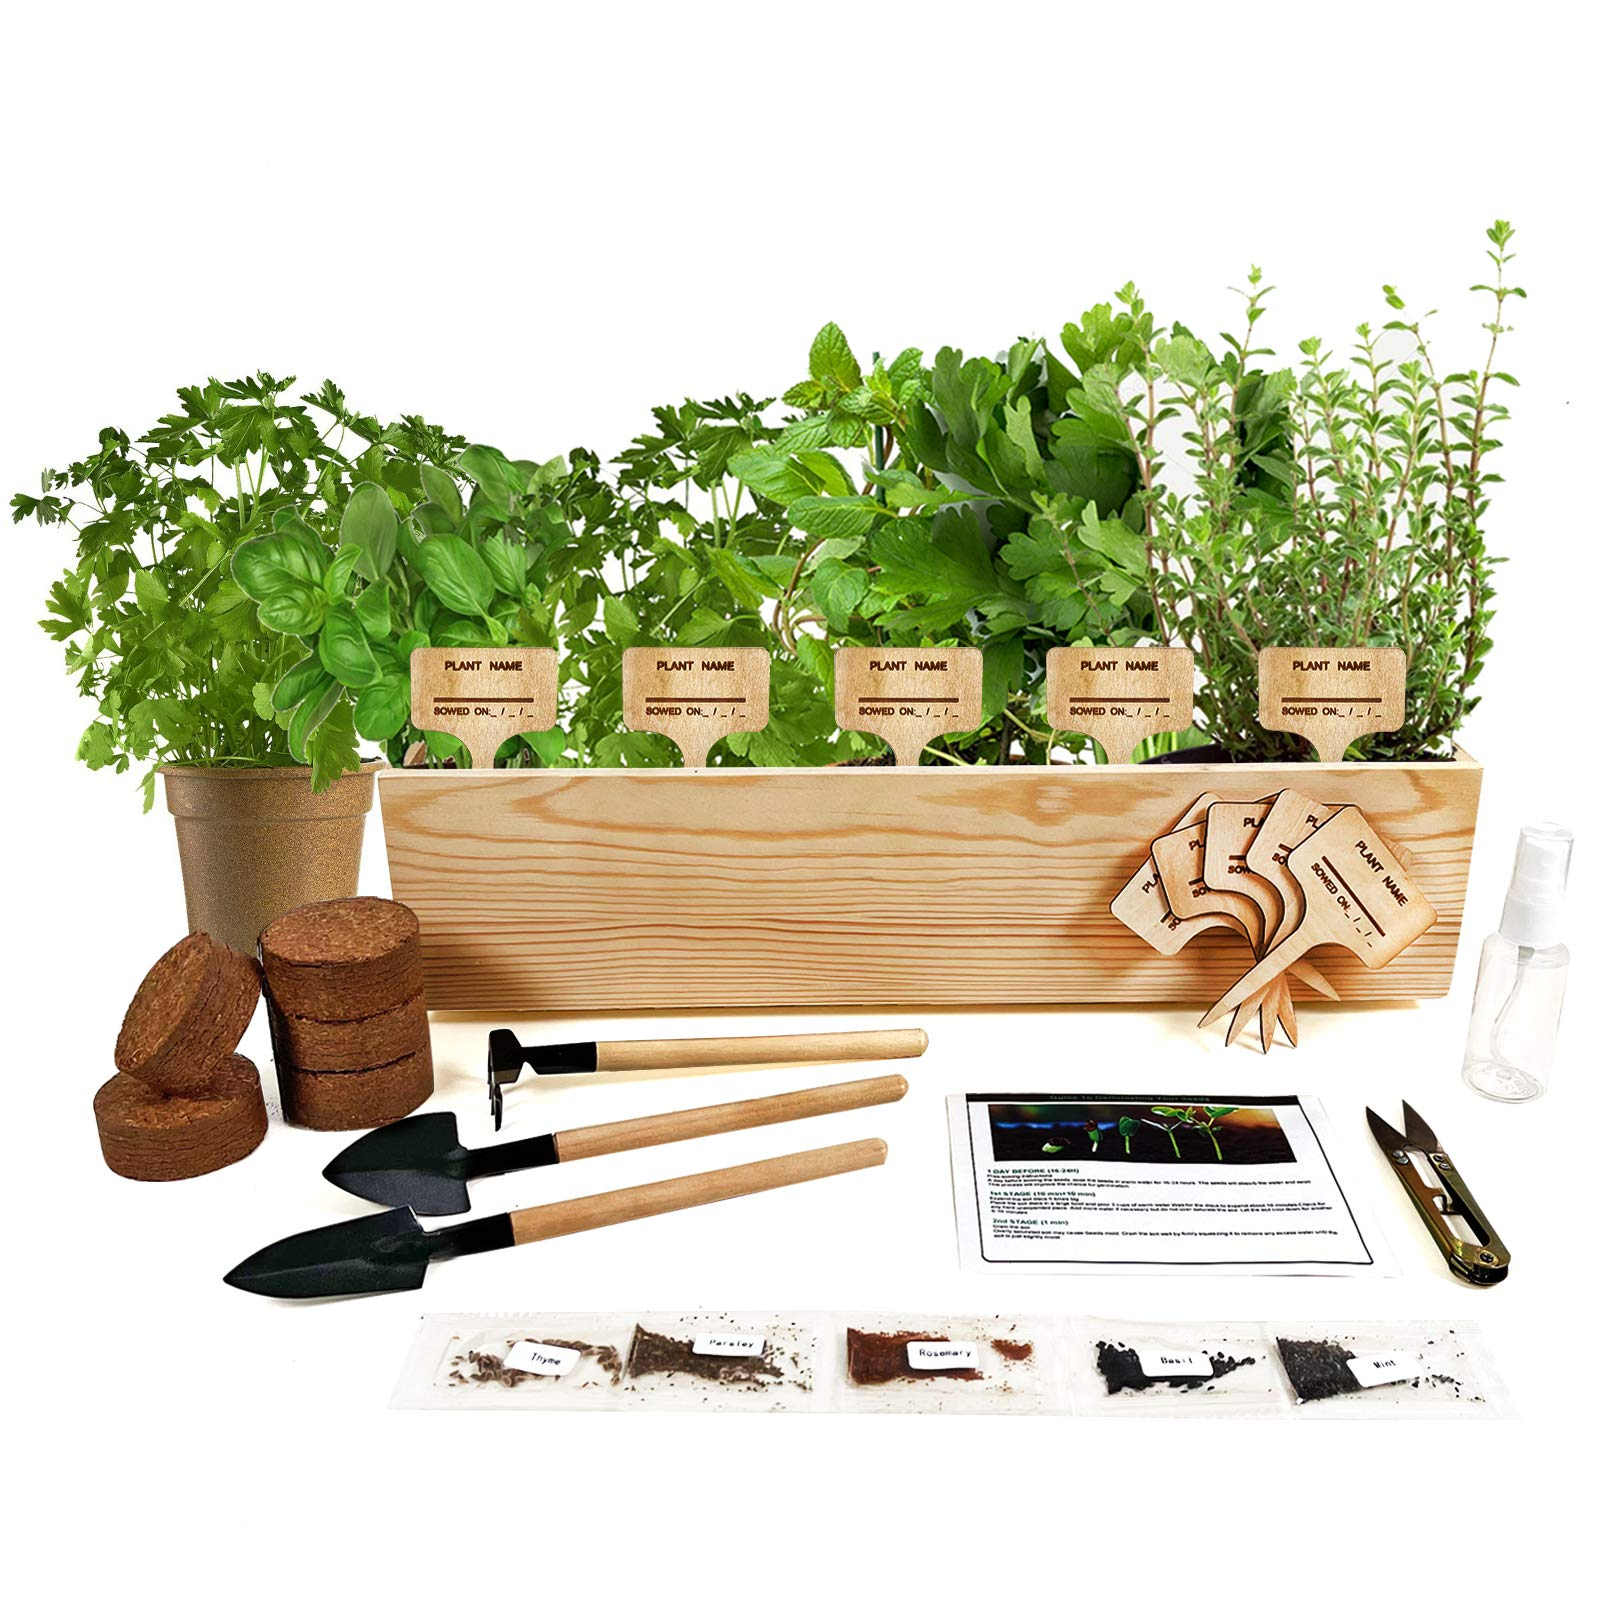 Hand-Mart 5 Herb Seeds Window Planter Starter Kit, Basil Parsley Rosemary Thyme Mint, Including Everything-Soil, Pots, 3 Garden-Tool, Pruner, Sprayer, Plant Labels, DIY Craft for Kids Adults